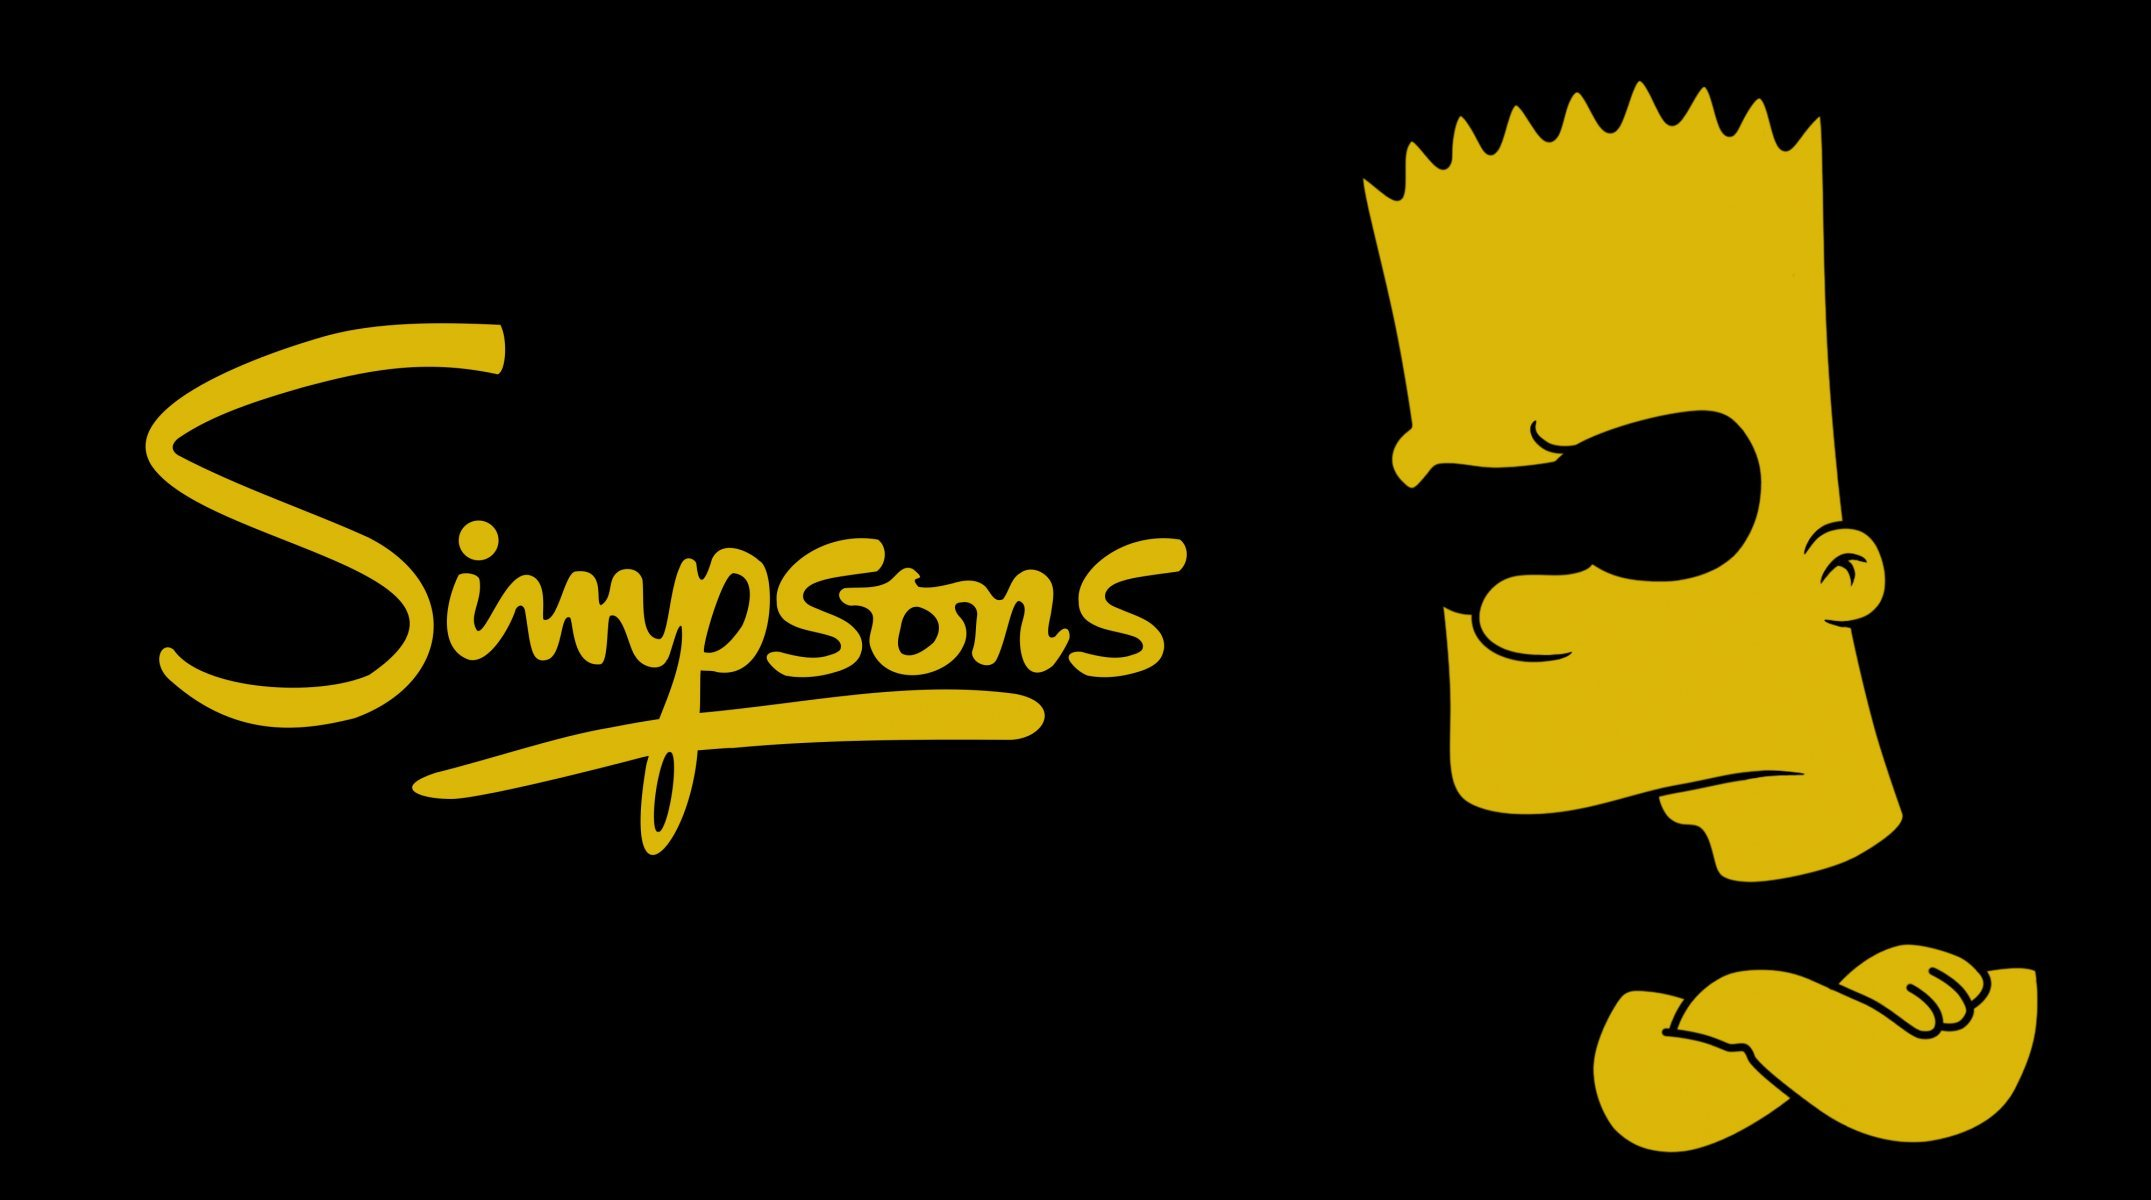 The Simpsons The Simpsons Bart Minimalism Black Yellow - Simpsons Supreme Wallpaper Pc , HD Wallpaper & Backgrounds